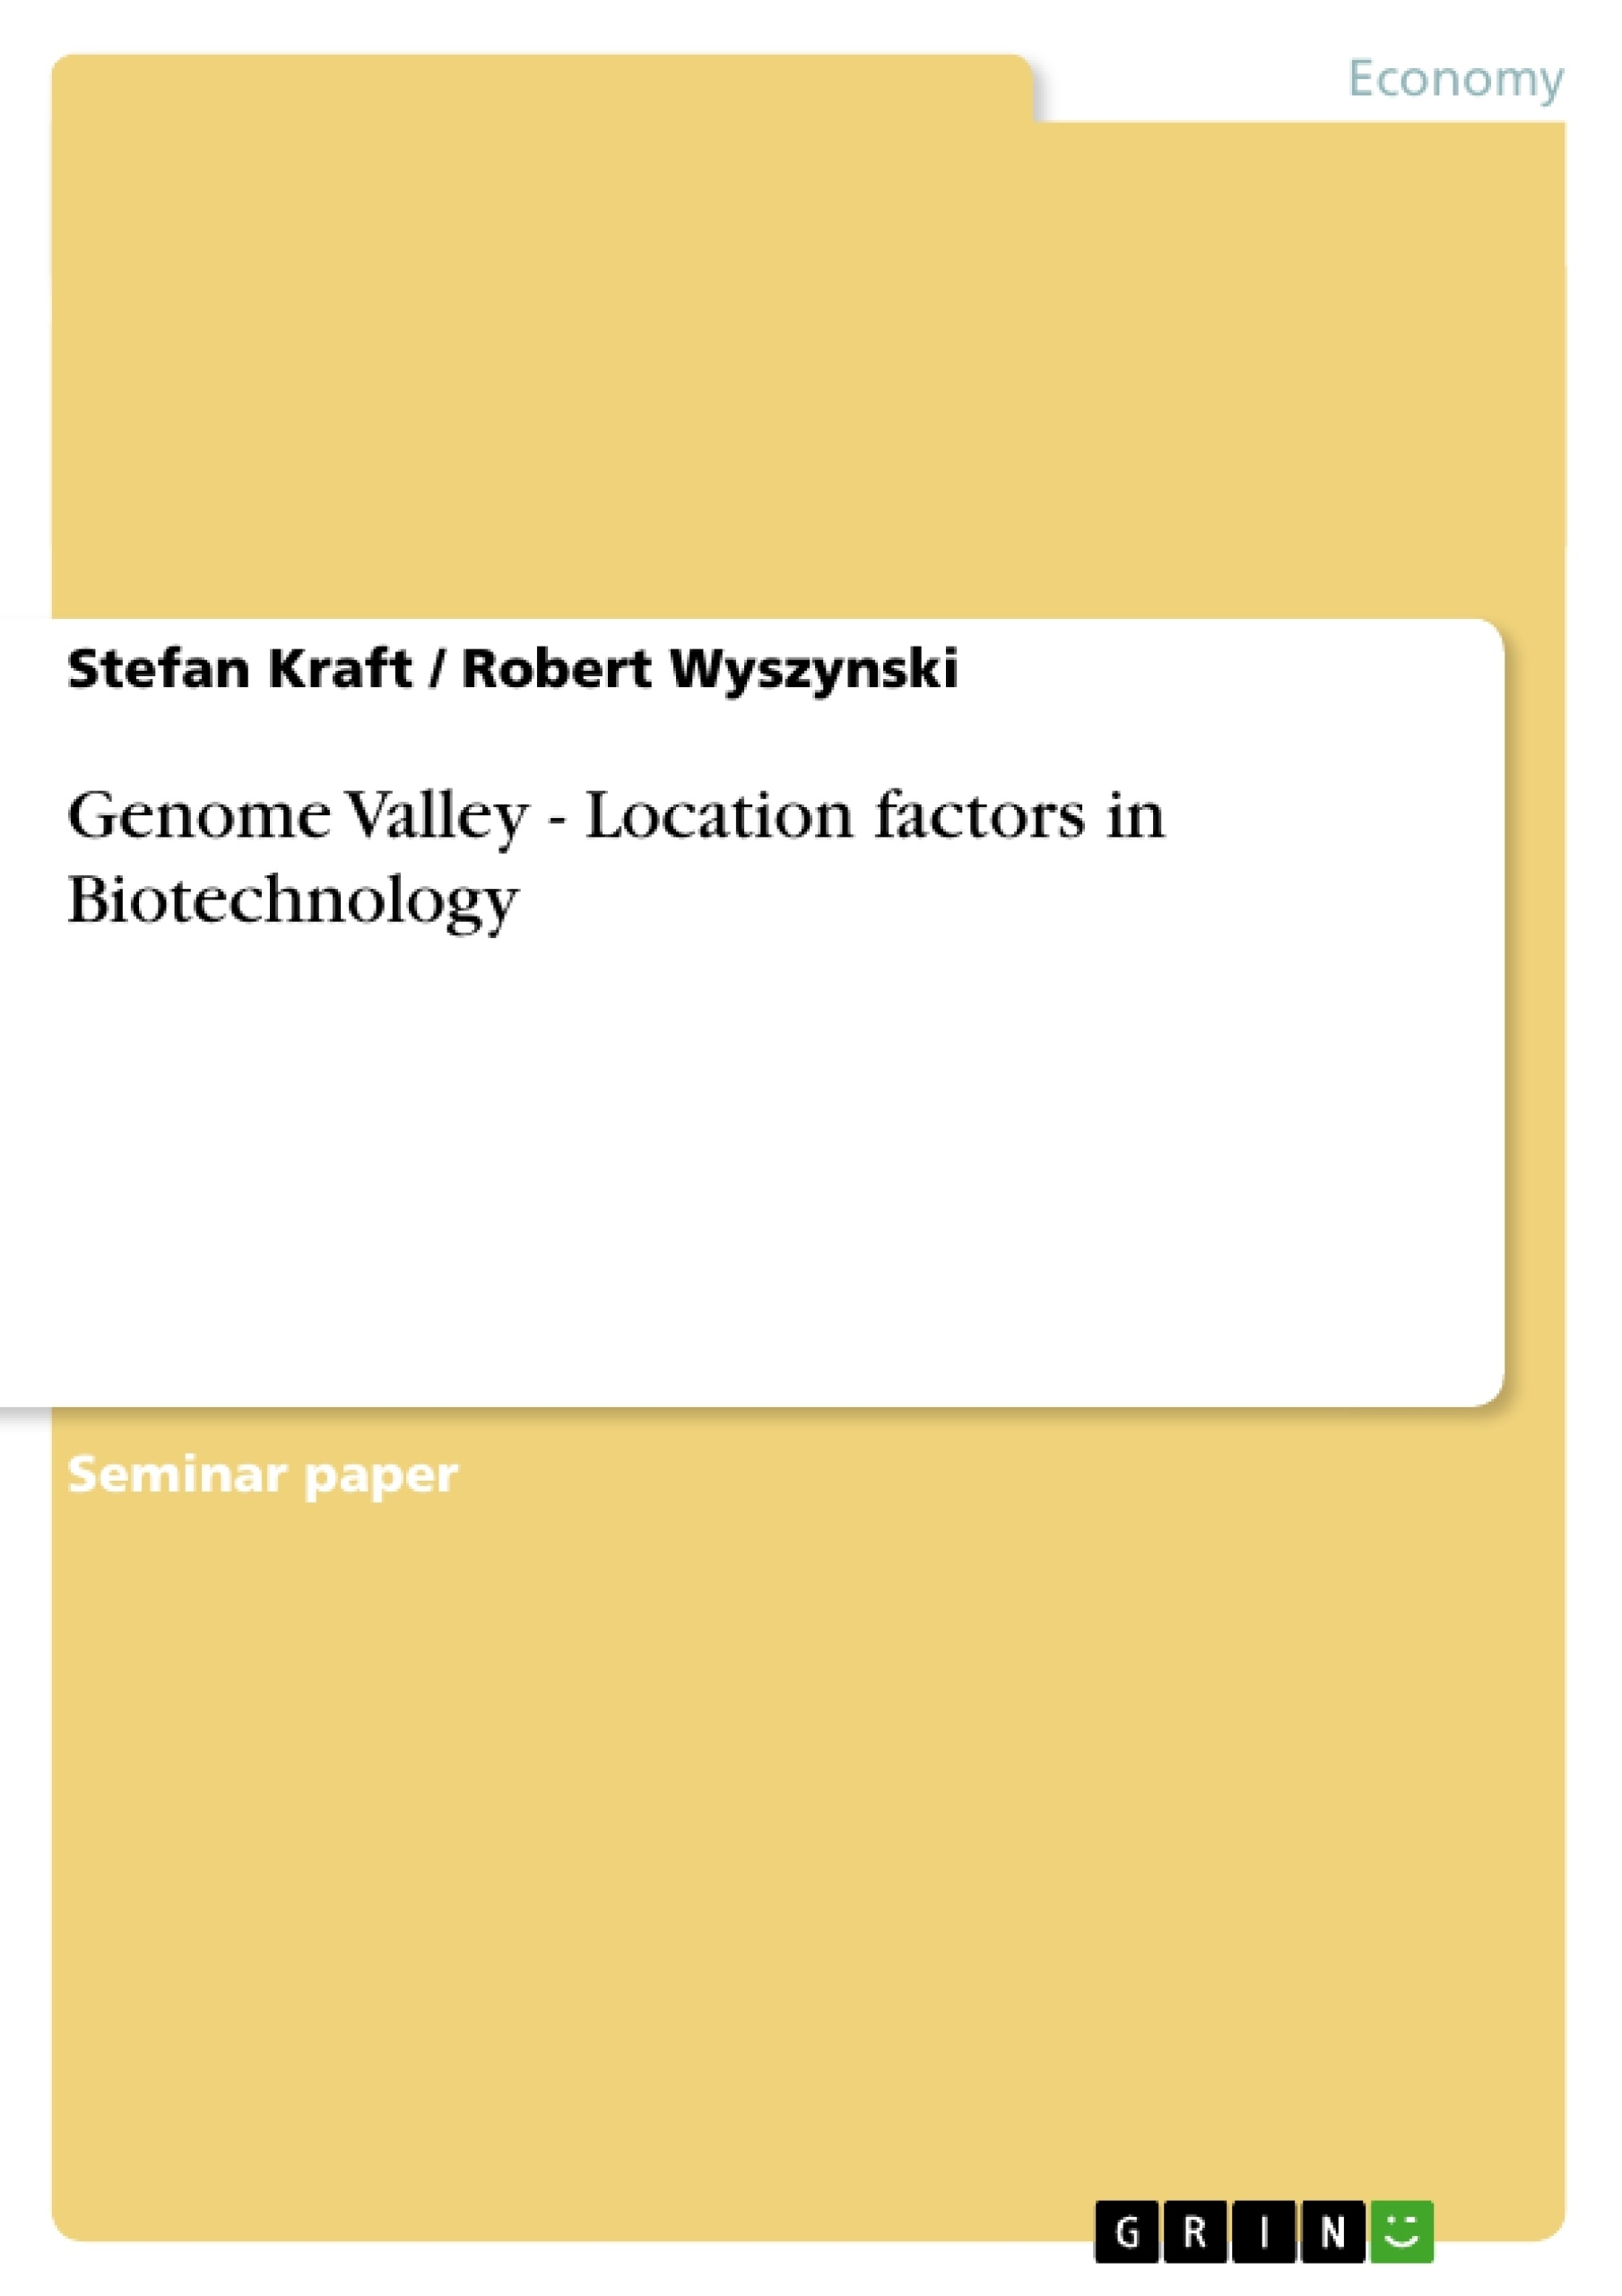 Title: Genome Valley - Location factors in Biotechnology